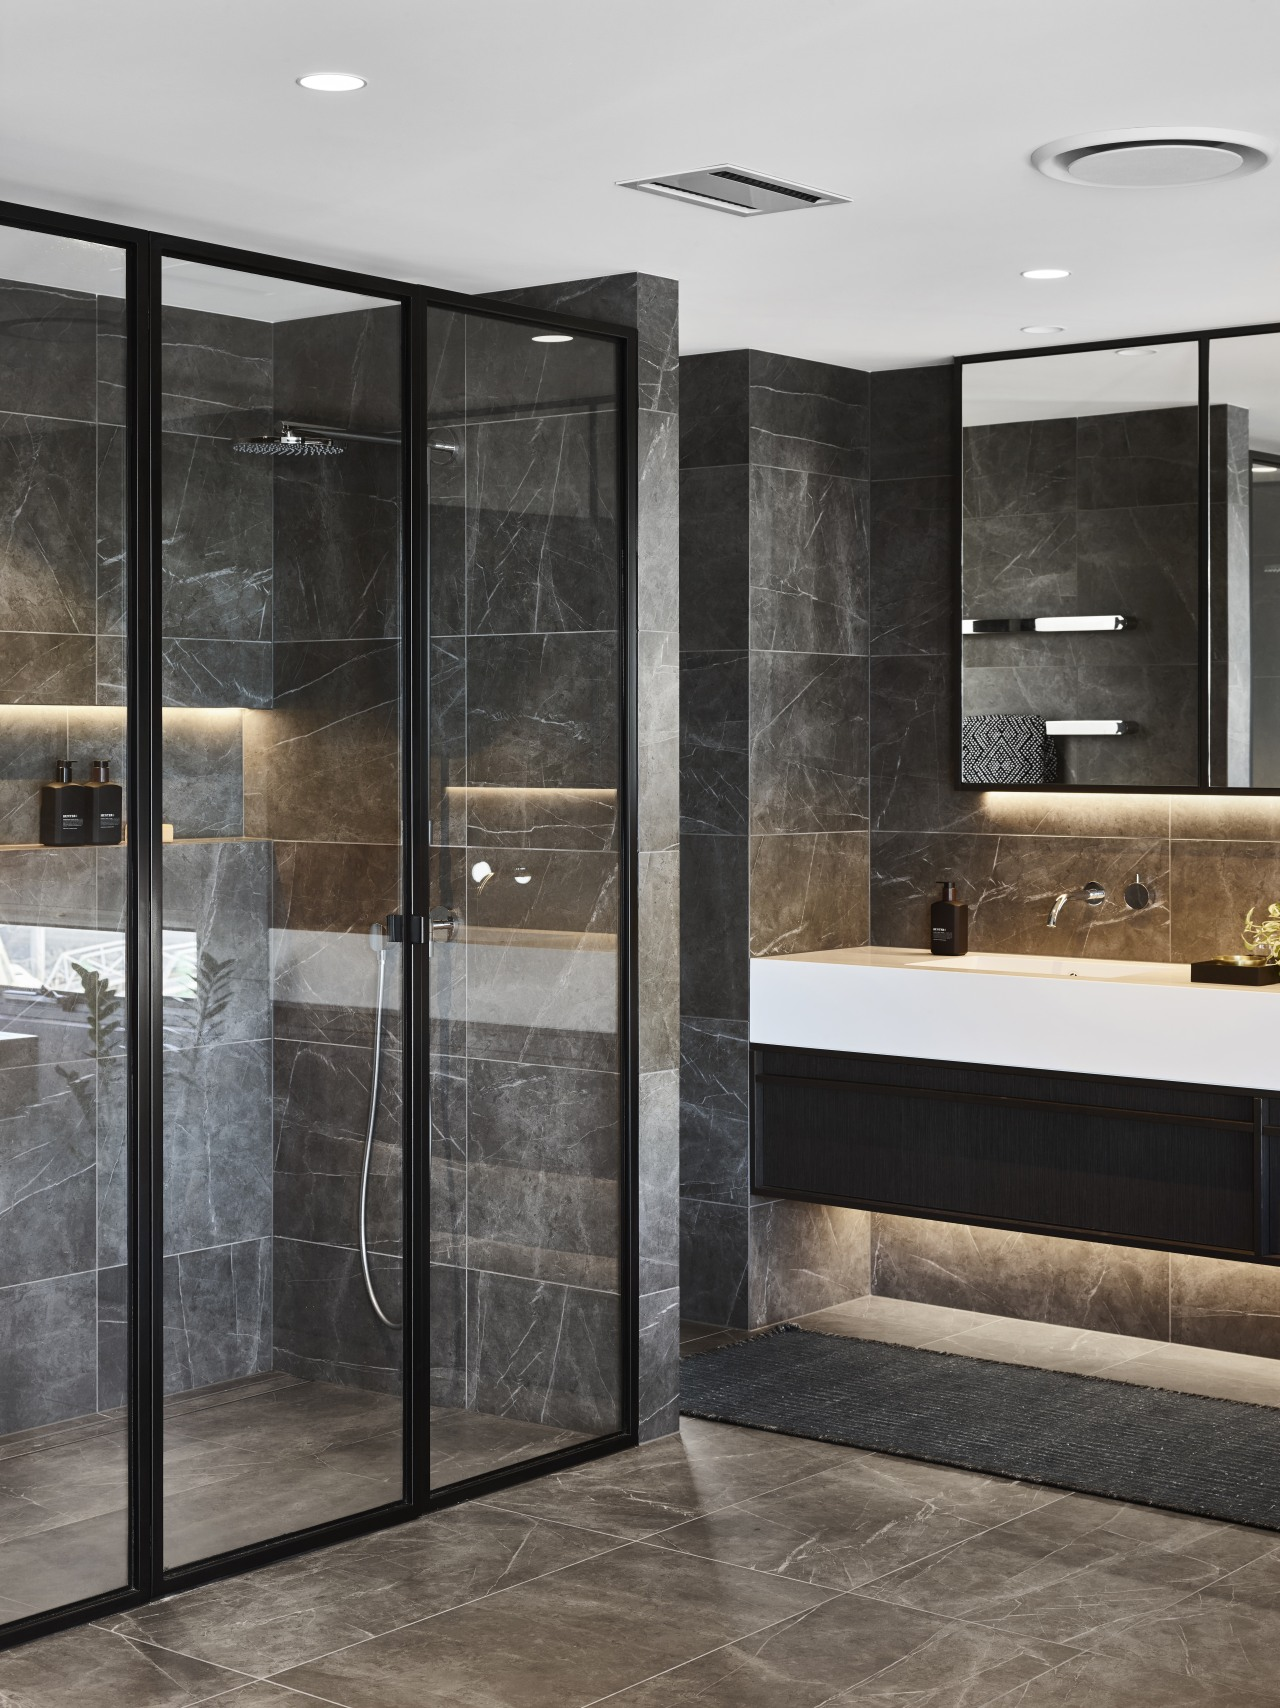 ​​​​​​​This shower nook is continued in the same architecture, automotive exterior, bathroom, building, ceiling, door, floor, flooring, furniture, glass, house, interior design, material property, property, room, shower, tile, gray, black